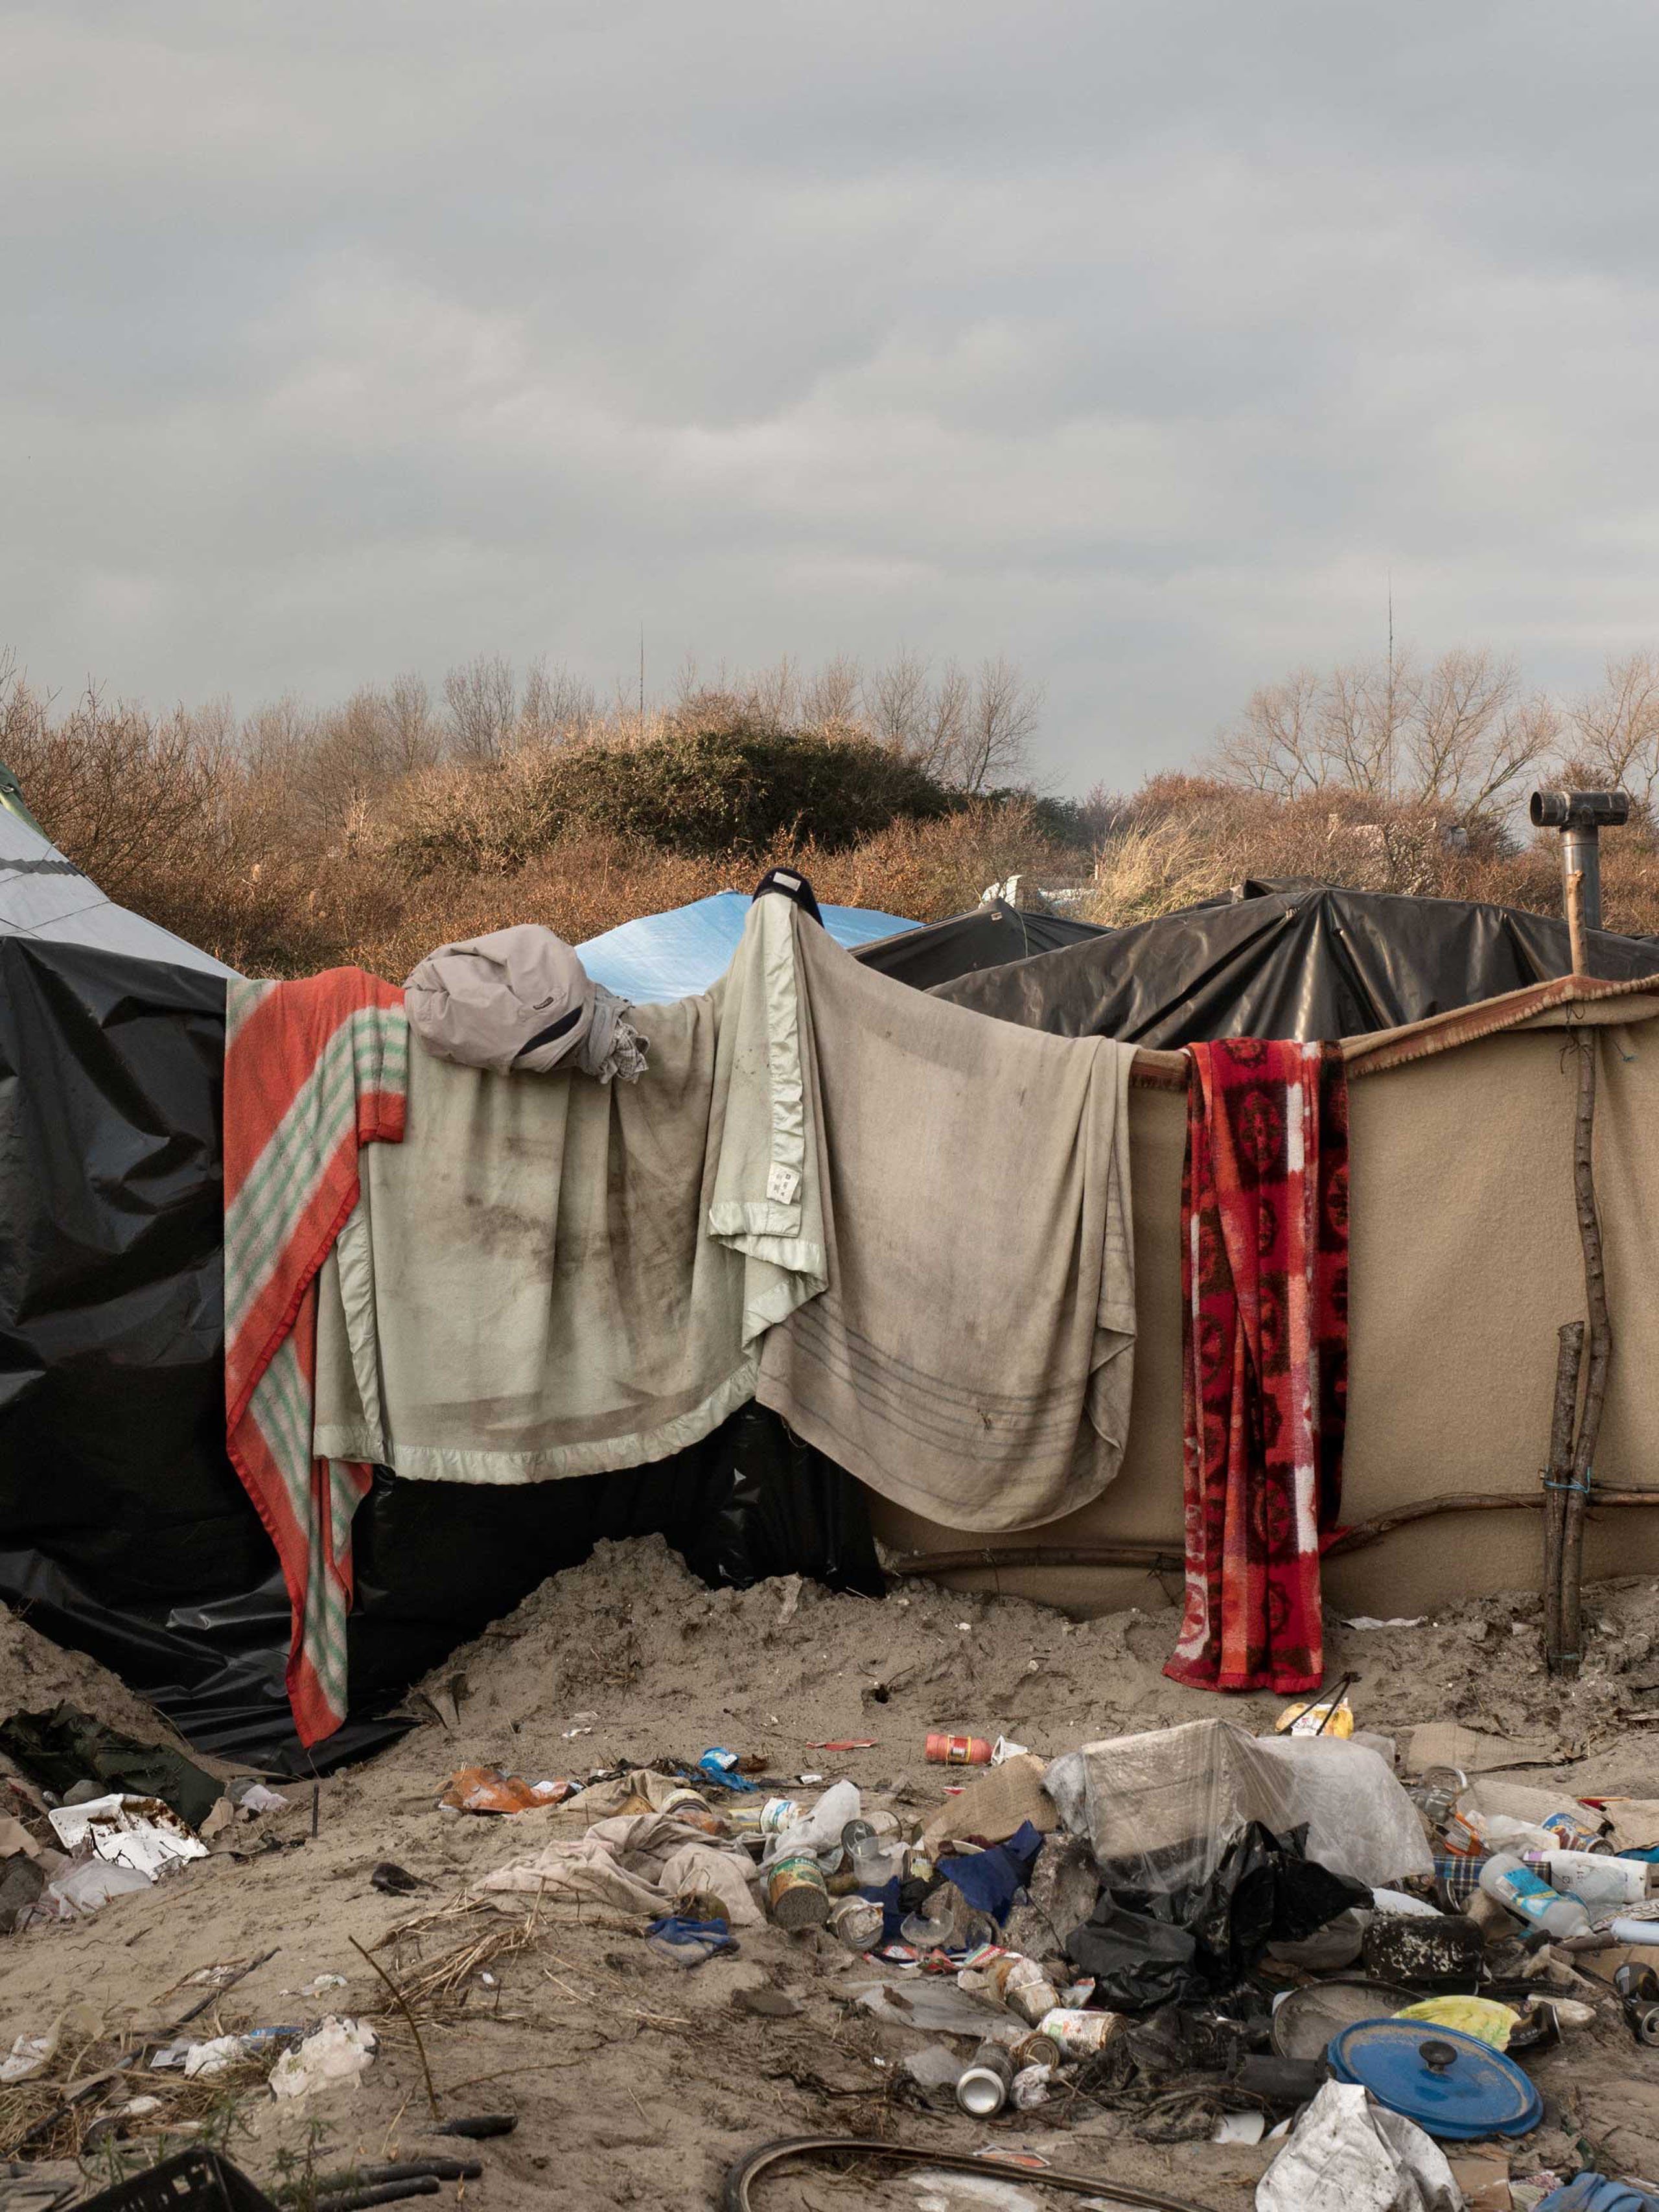 A dwelling for migrants in the  jungle  in Calais, France, Jan. 20, 2016.